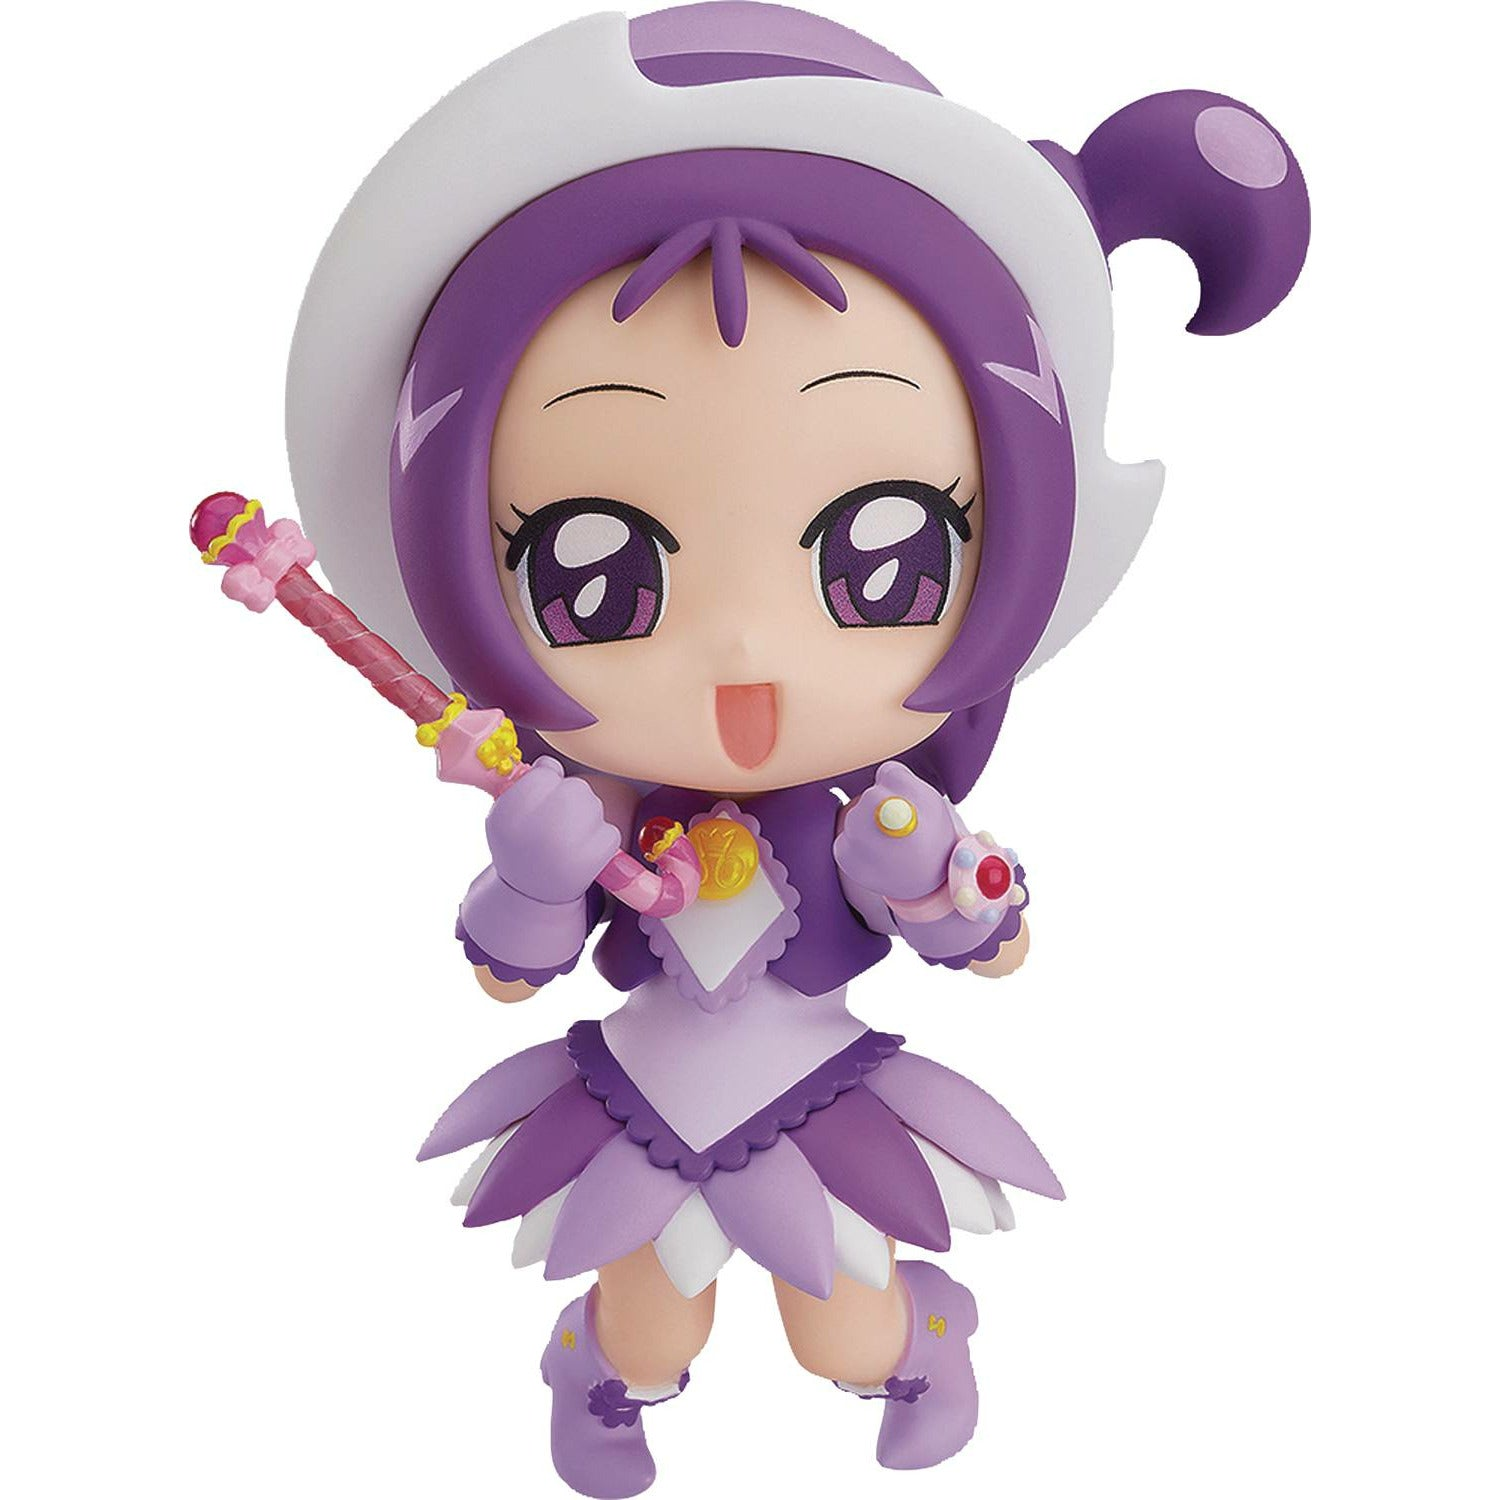 Magical Doremi 3 Onpu Segawa Nendoroid Action Figure